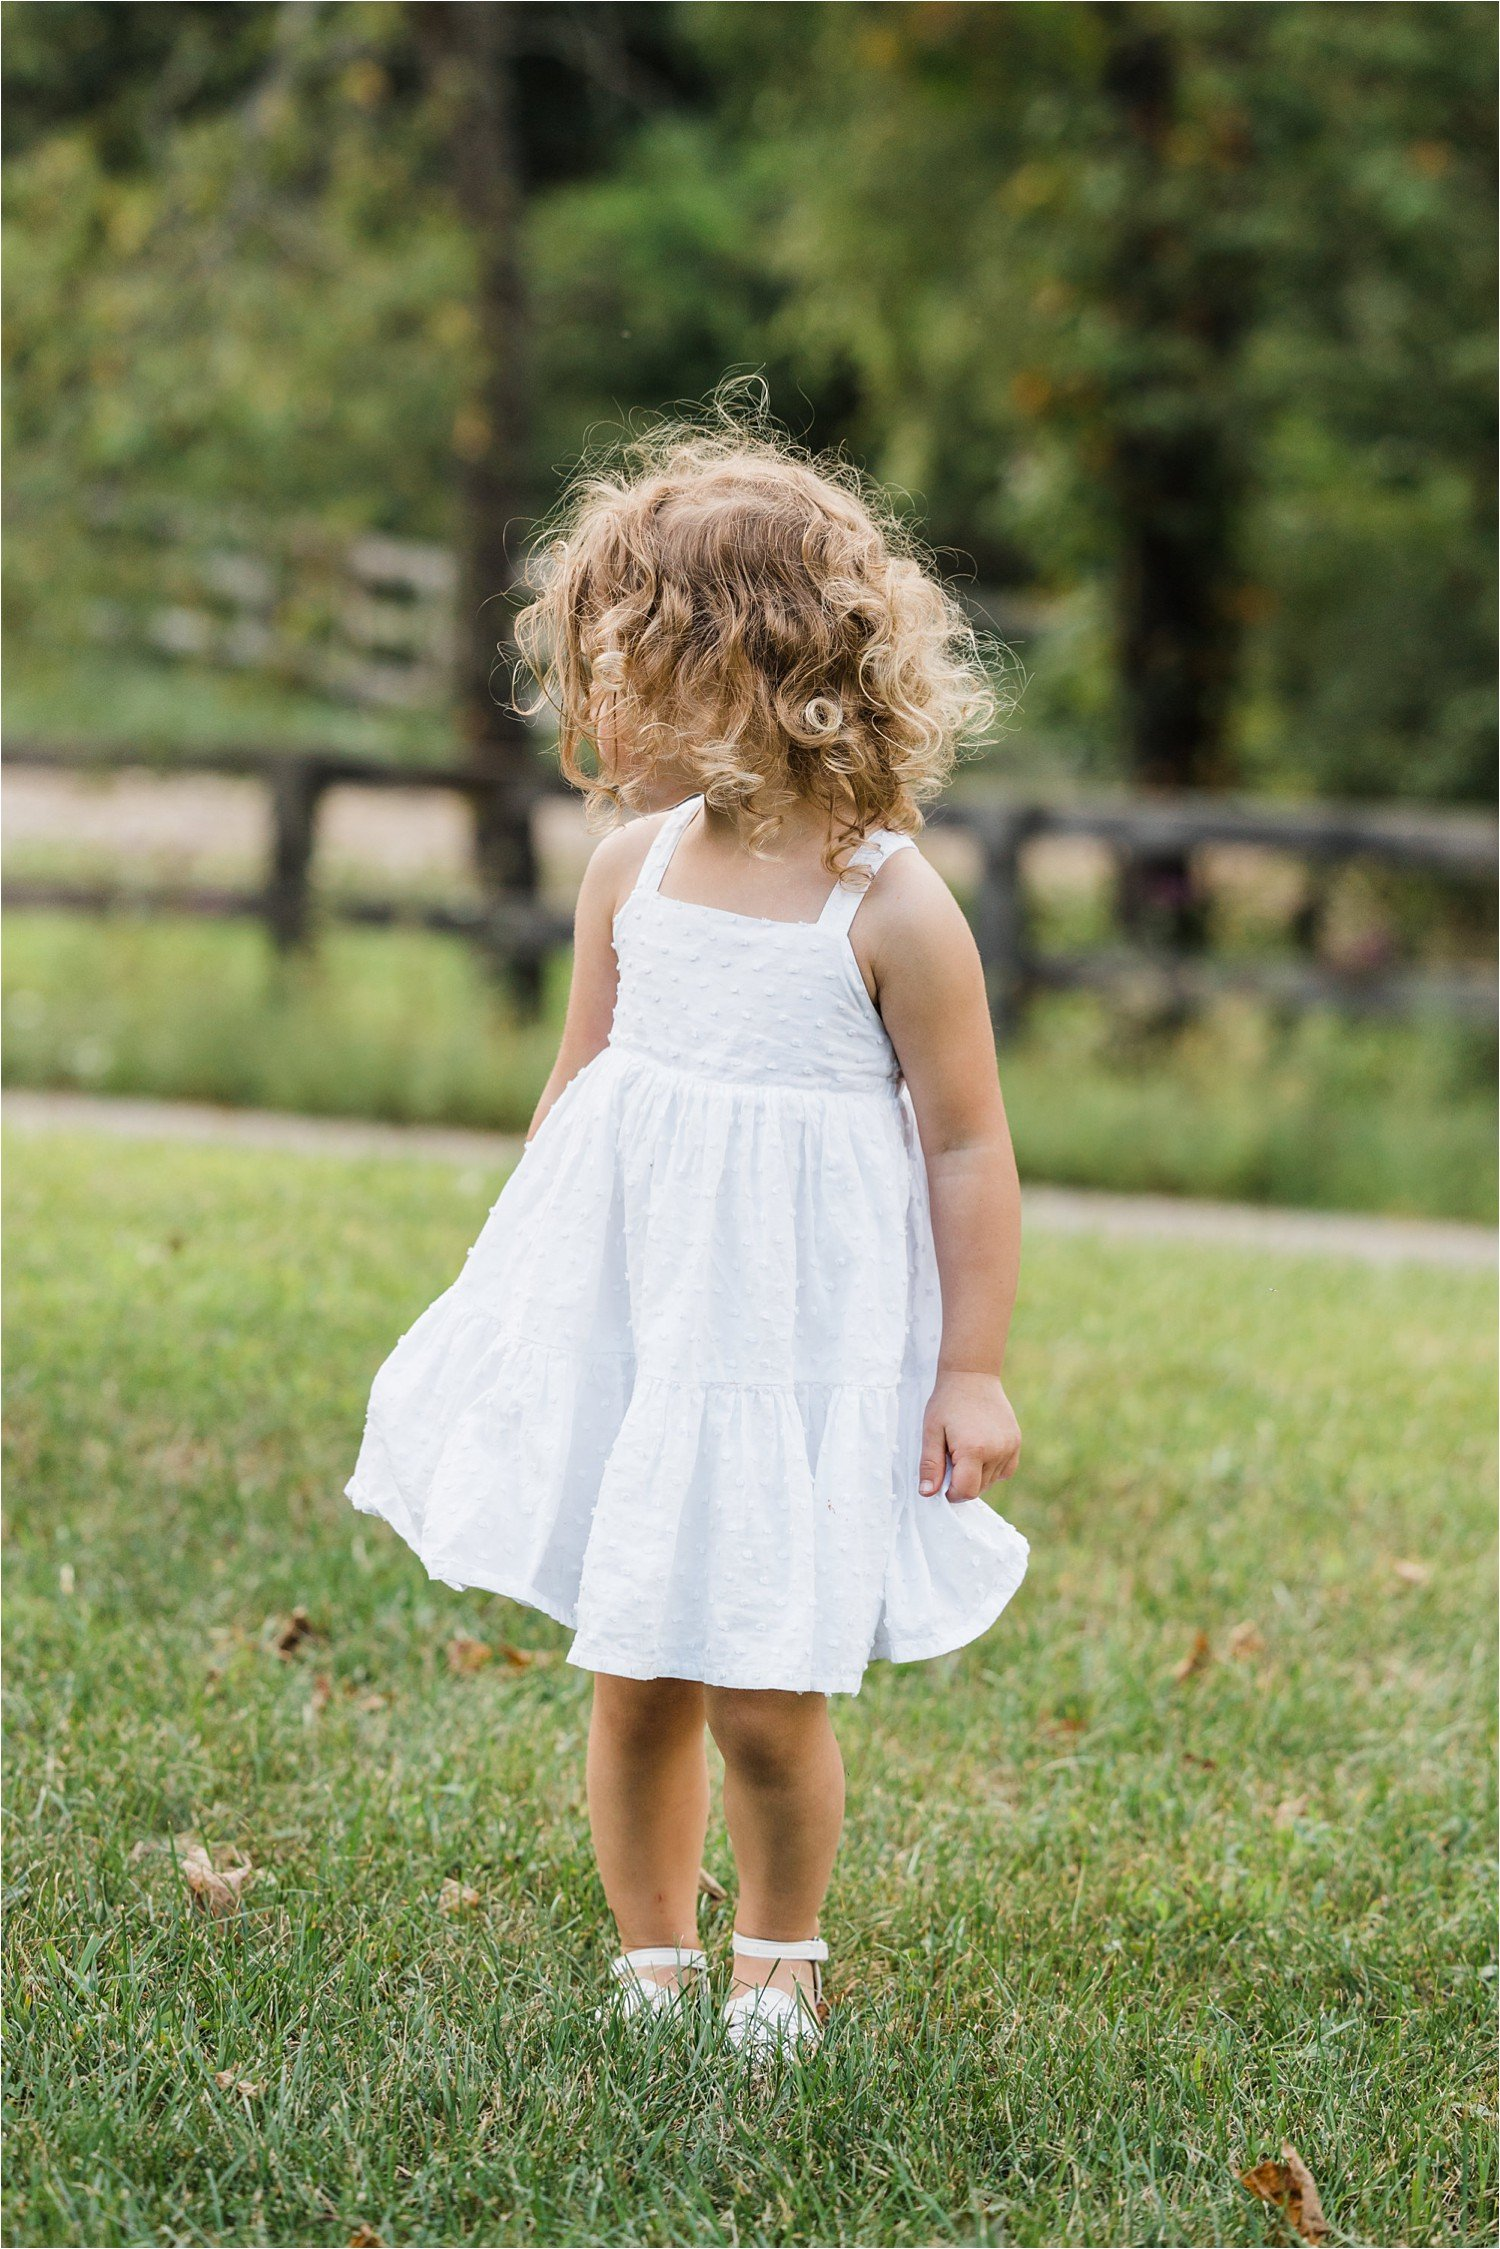 profile portrait of little girl with blonde curly hair in a white dress